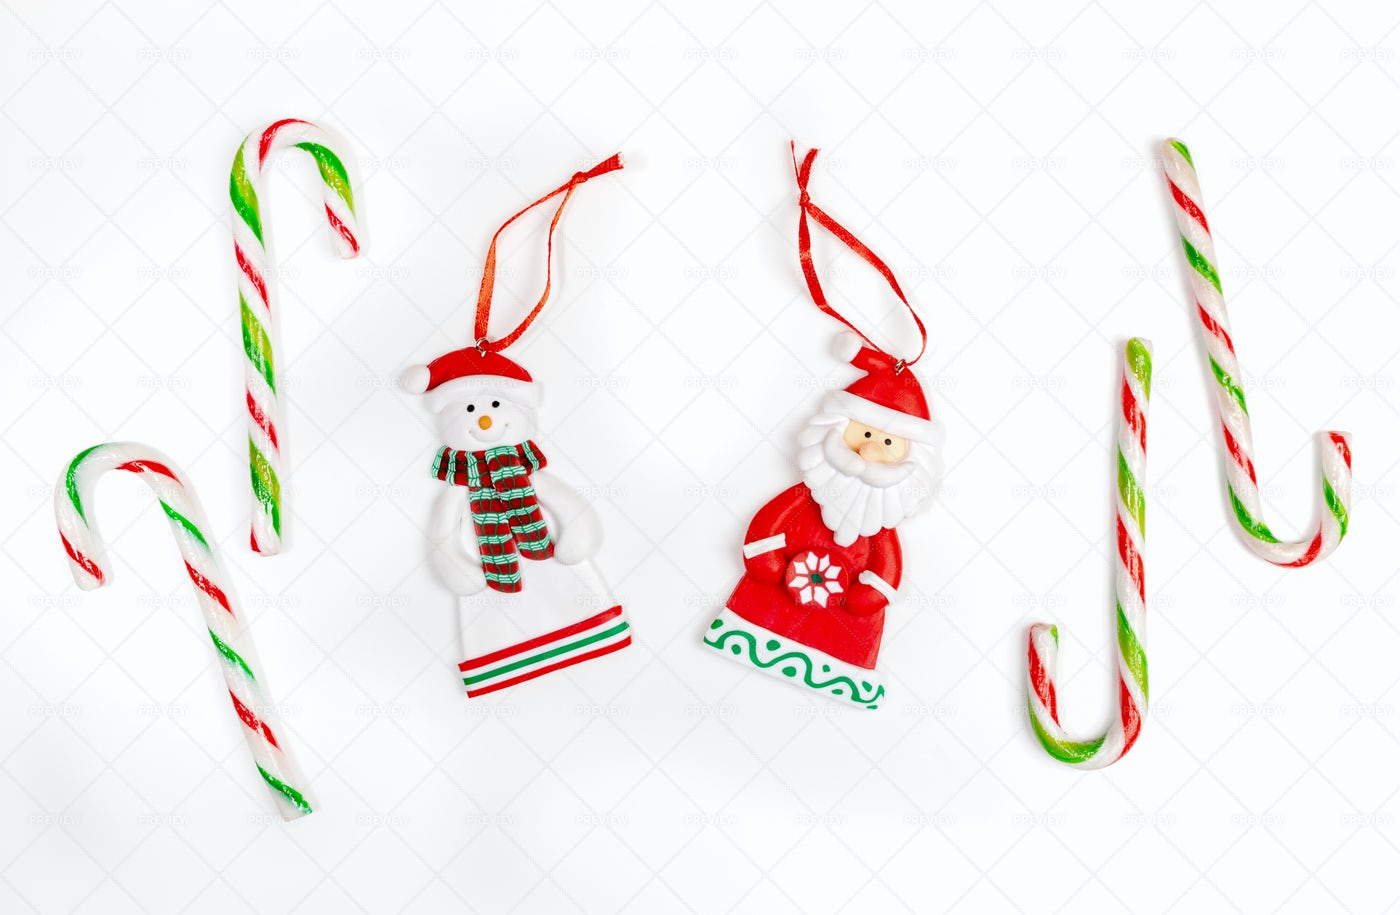 Christmas Composition With Xmas Tree Toy: Stock Photos